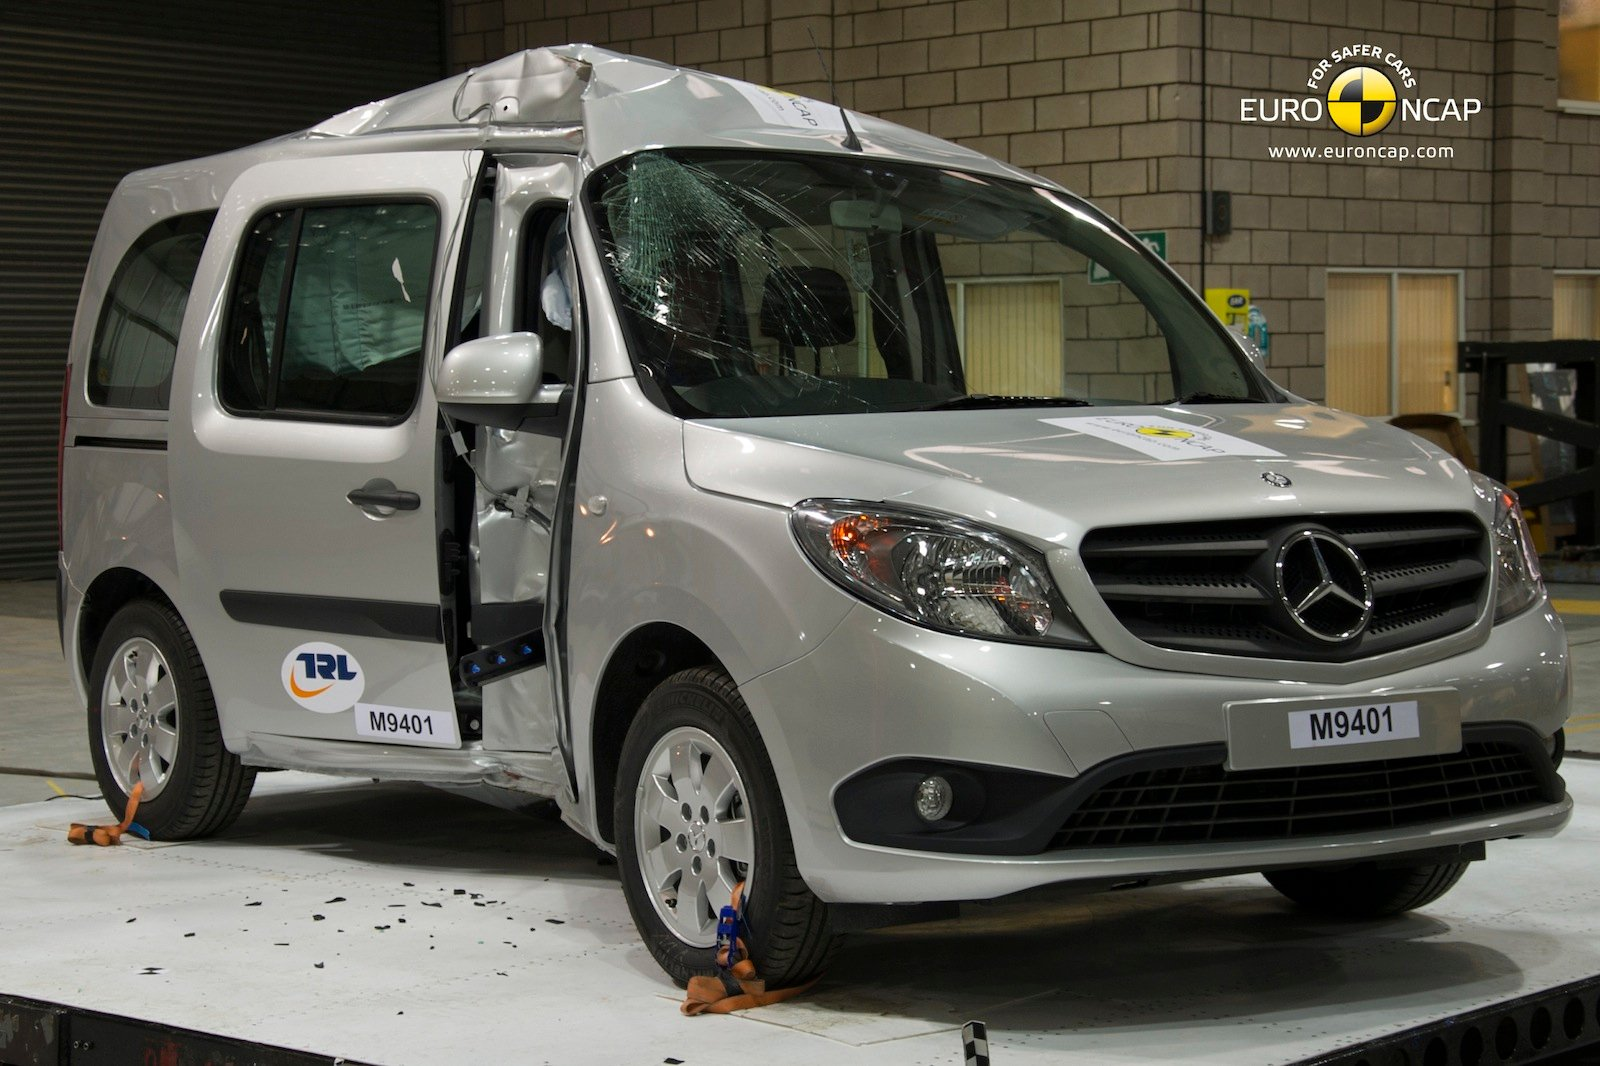 mercedes benz citan scores three stars in euro ncap crash test photos. Black Bedroom Furniture Sets. Home Design Ideas